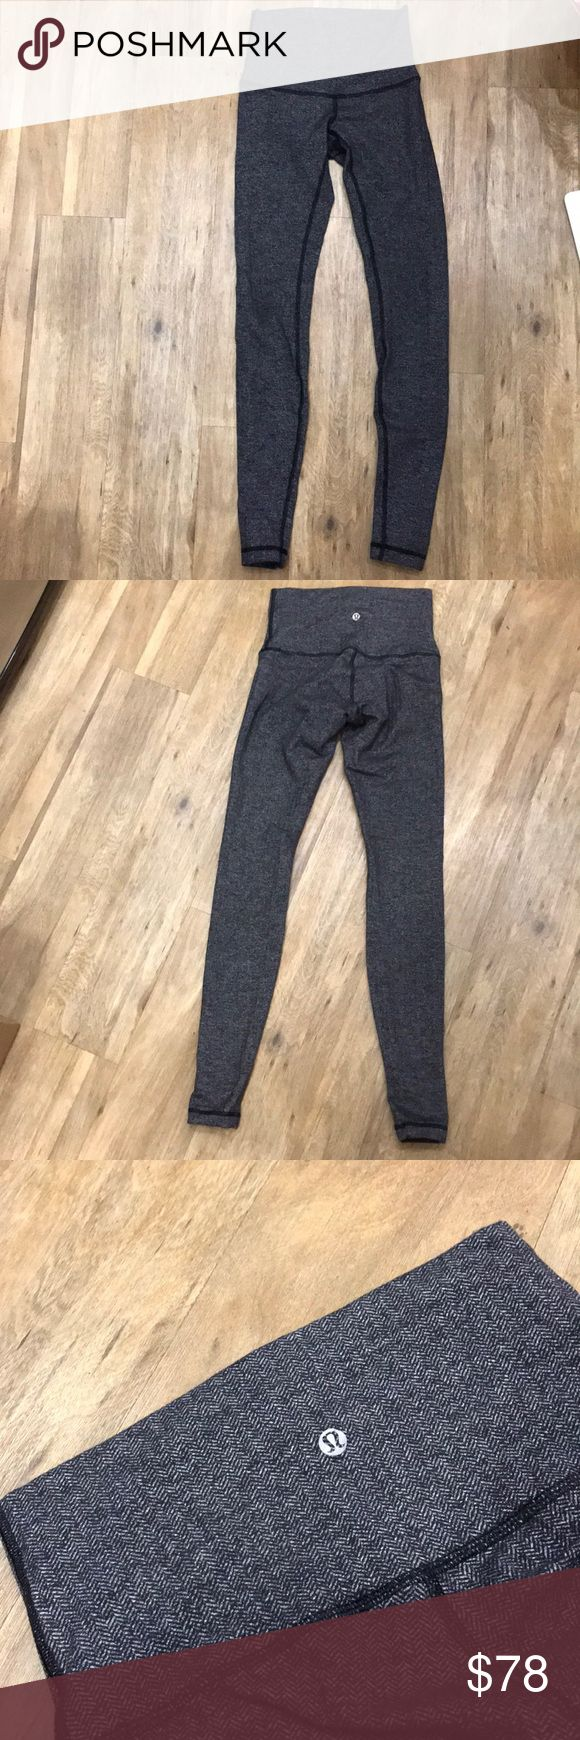 Lululemon Herringbone Wunder Under Pant Amazingly soft, herringbone, grey/black Lululemon Wunder Under pants. Size 4. Come to ankle or longer. High-waisted with reflective Lululemon logo on the back waistband - centered. Like new, amazing condition and well-cared for. Perfect for cold weather or school! lululemon athletica Pants Leggings